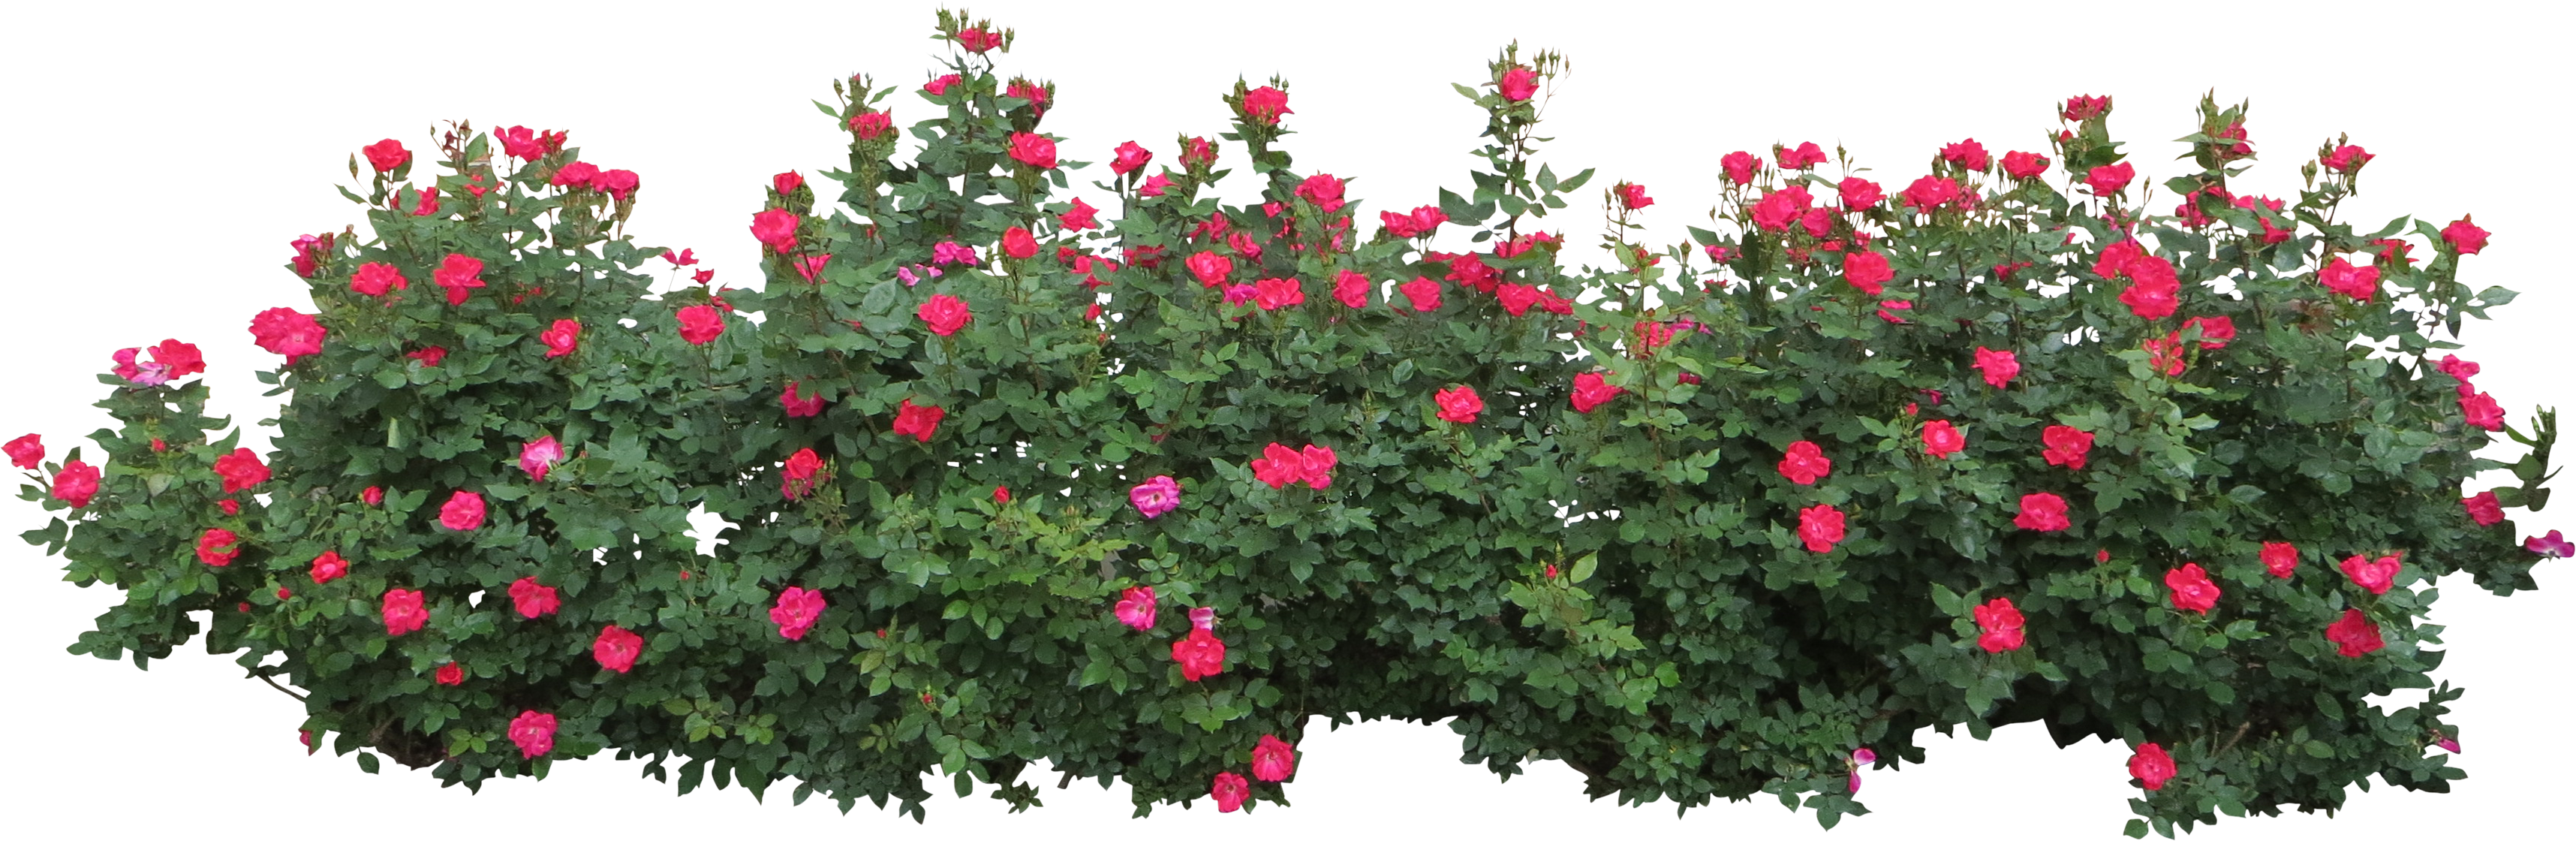 Bushes PNG image image with transparent background